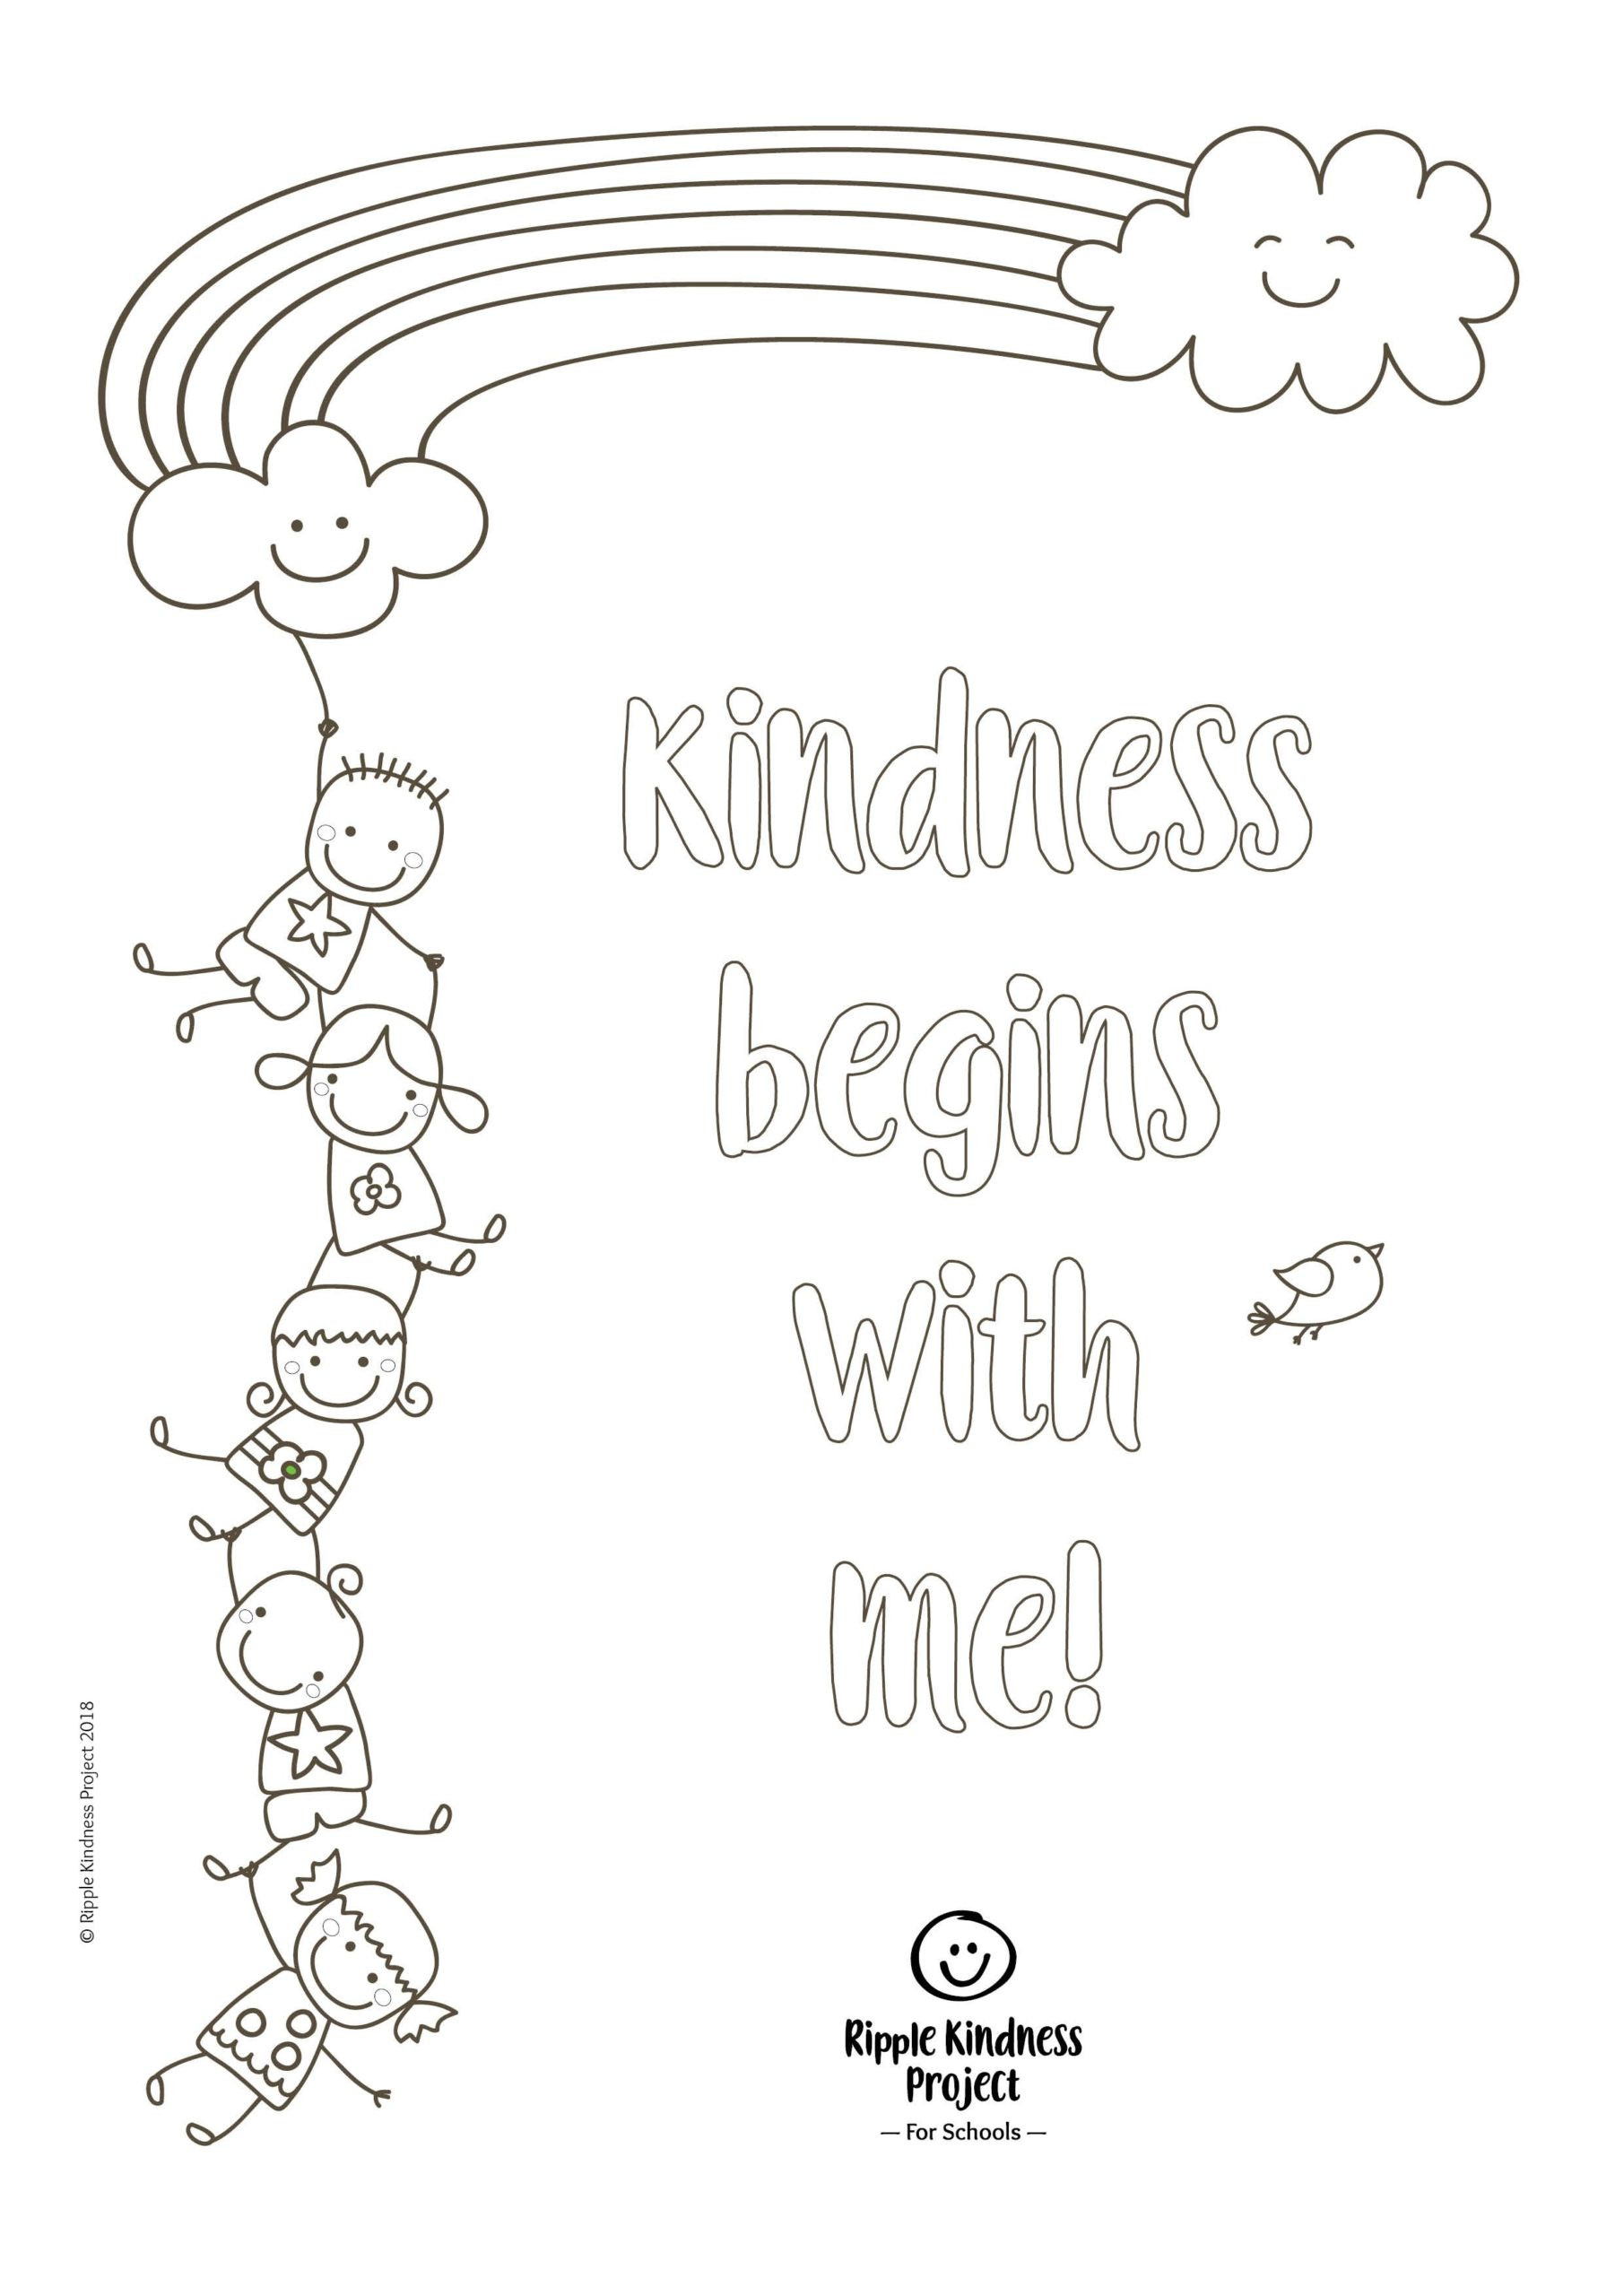 Free 3rd Grade Health Worksheets Free Printables Teaching Kindness Activities Printable